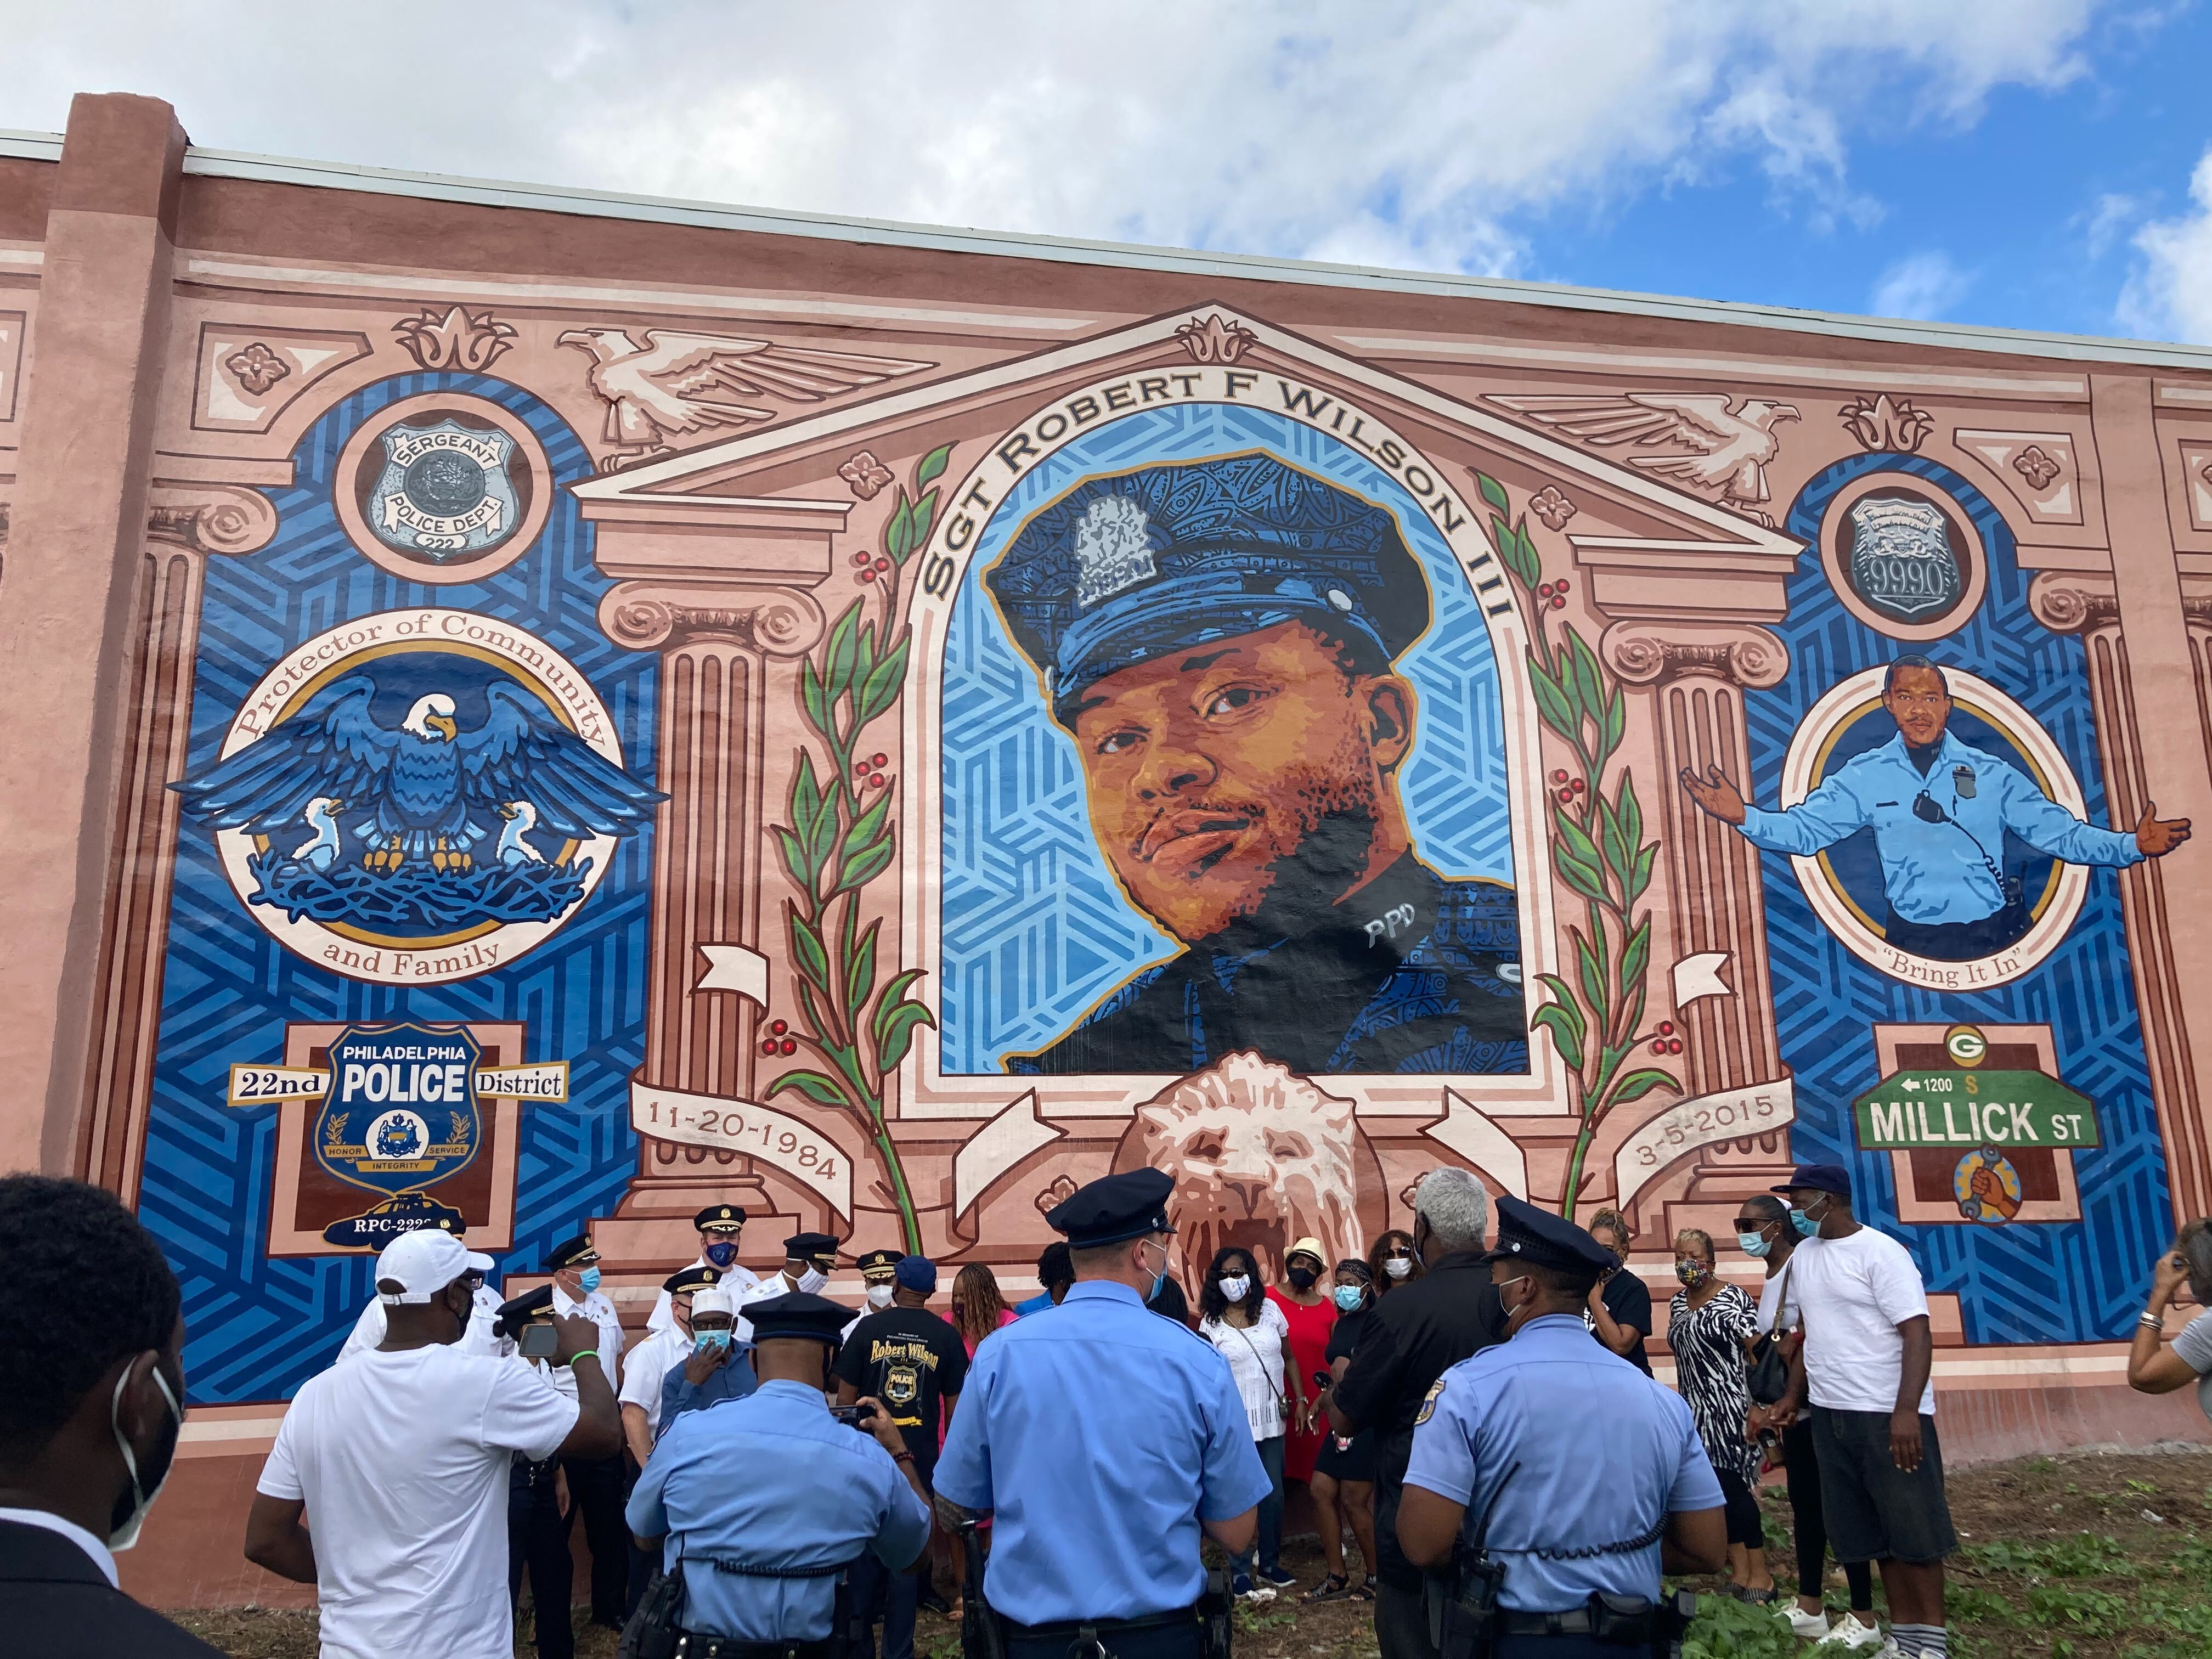 City officials, police officers from the 18th district, and neighborhood residents pose in front of the Sgt. Robert Wilson III mural